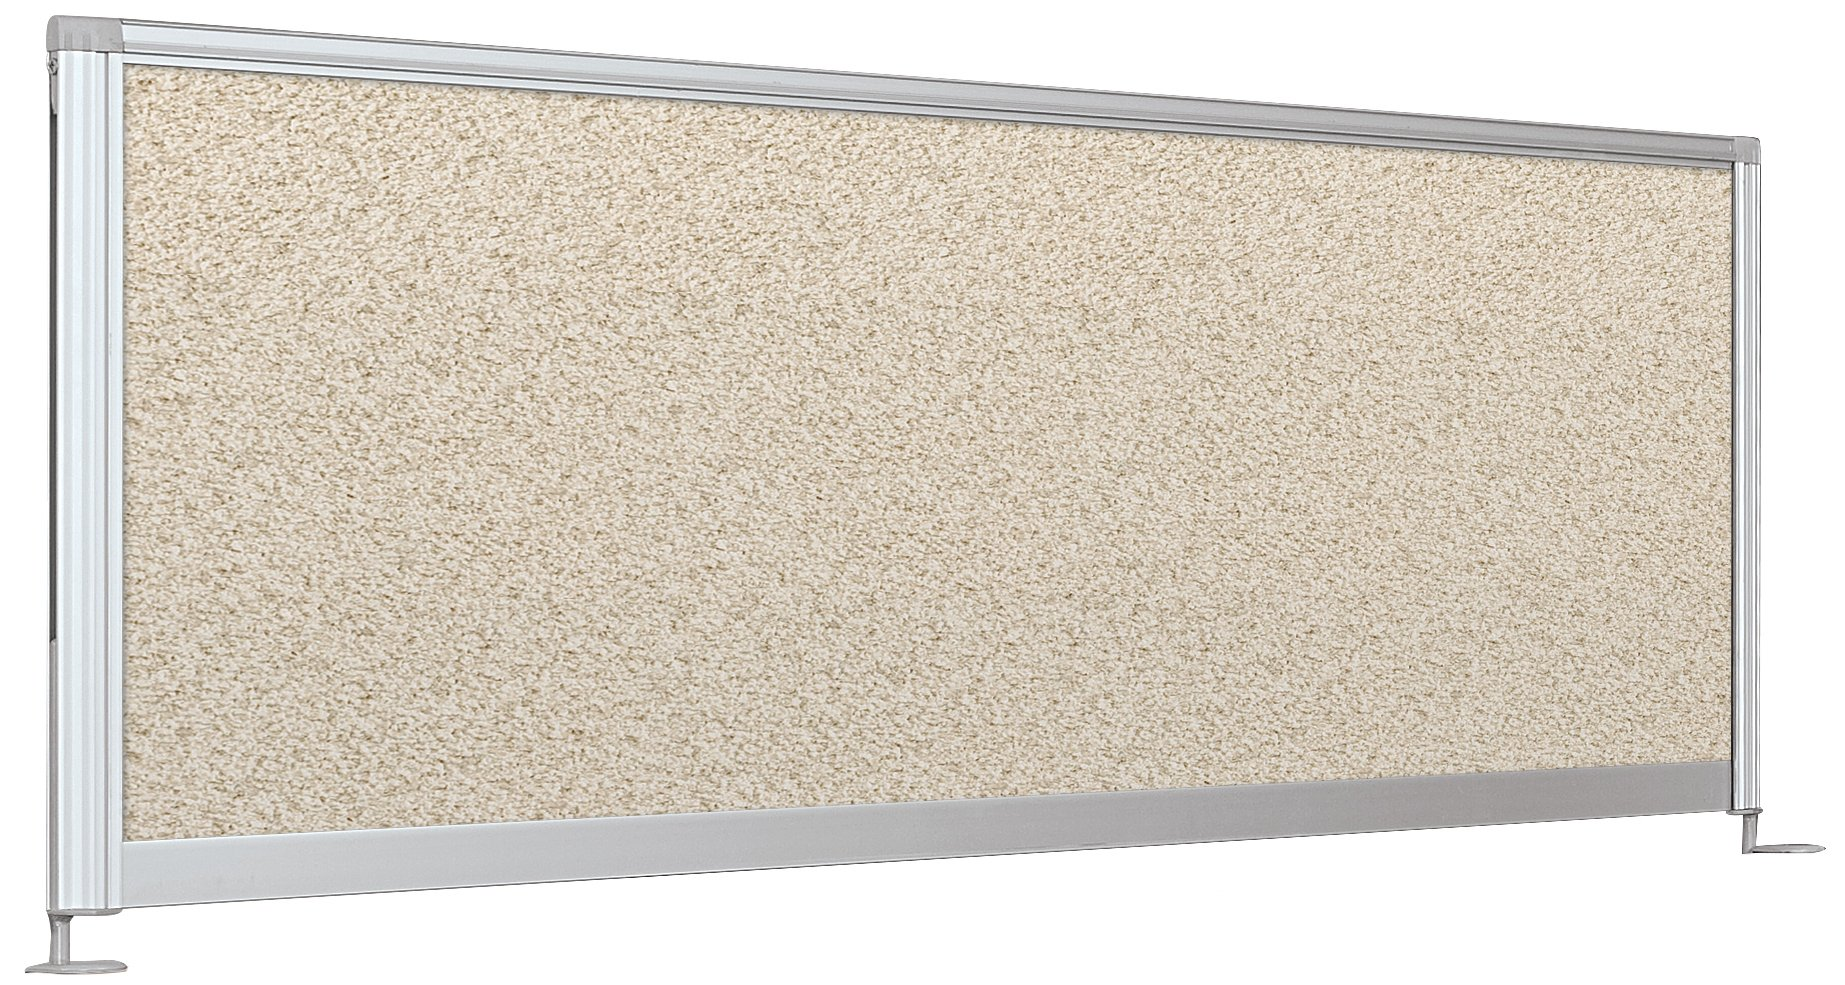 Balt Desktop Privacy Panel, 58-Inch Pebbles Vinyl Quarry by Balt